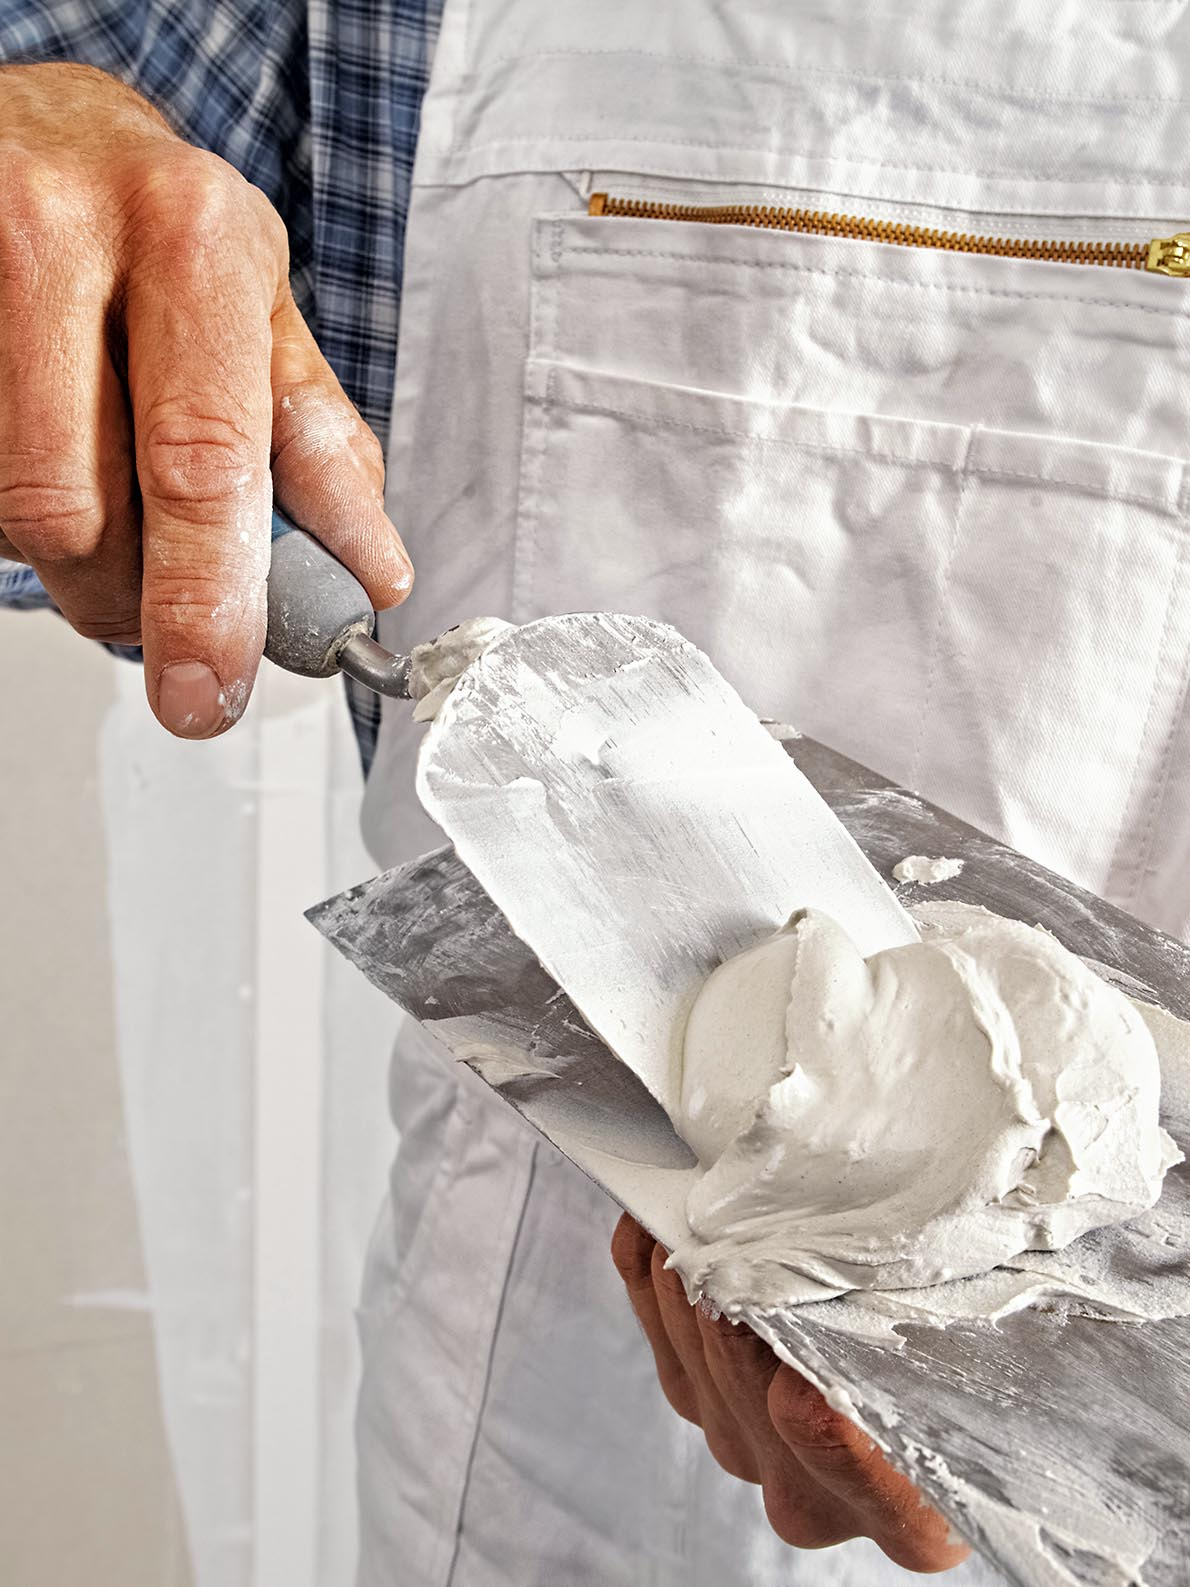 Filling the joints of plaster boards